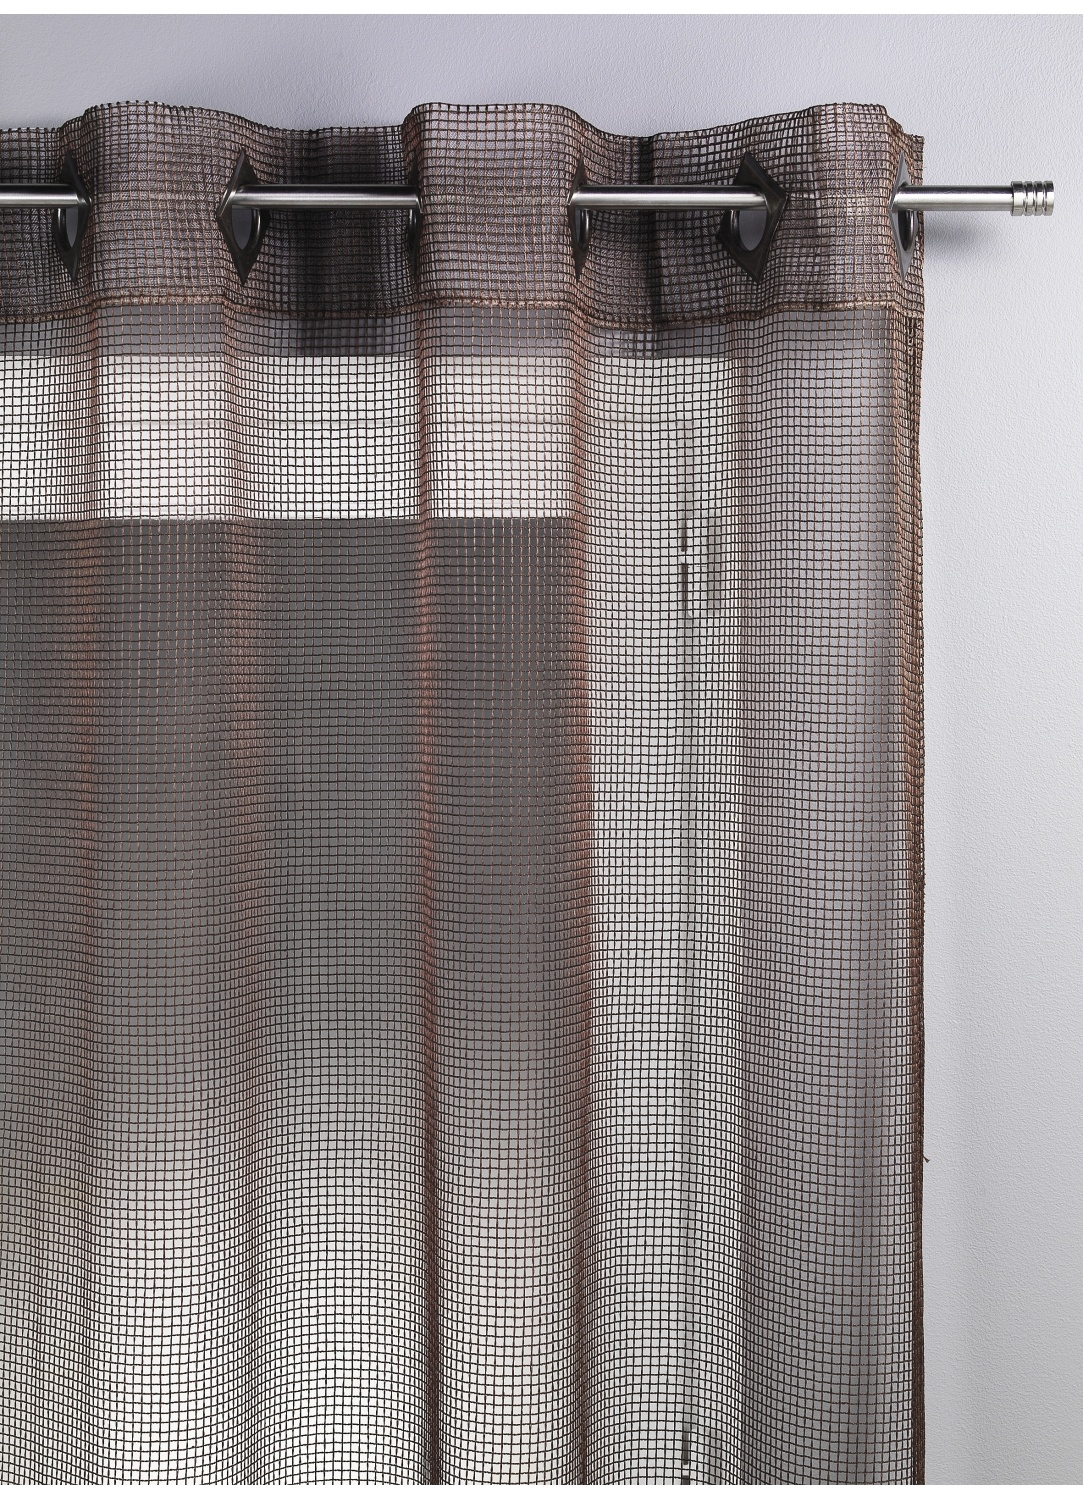 Voilage Filet Chocolat Bordeaux Bambou Prune